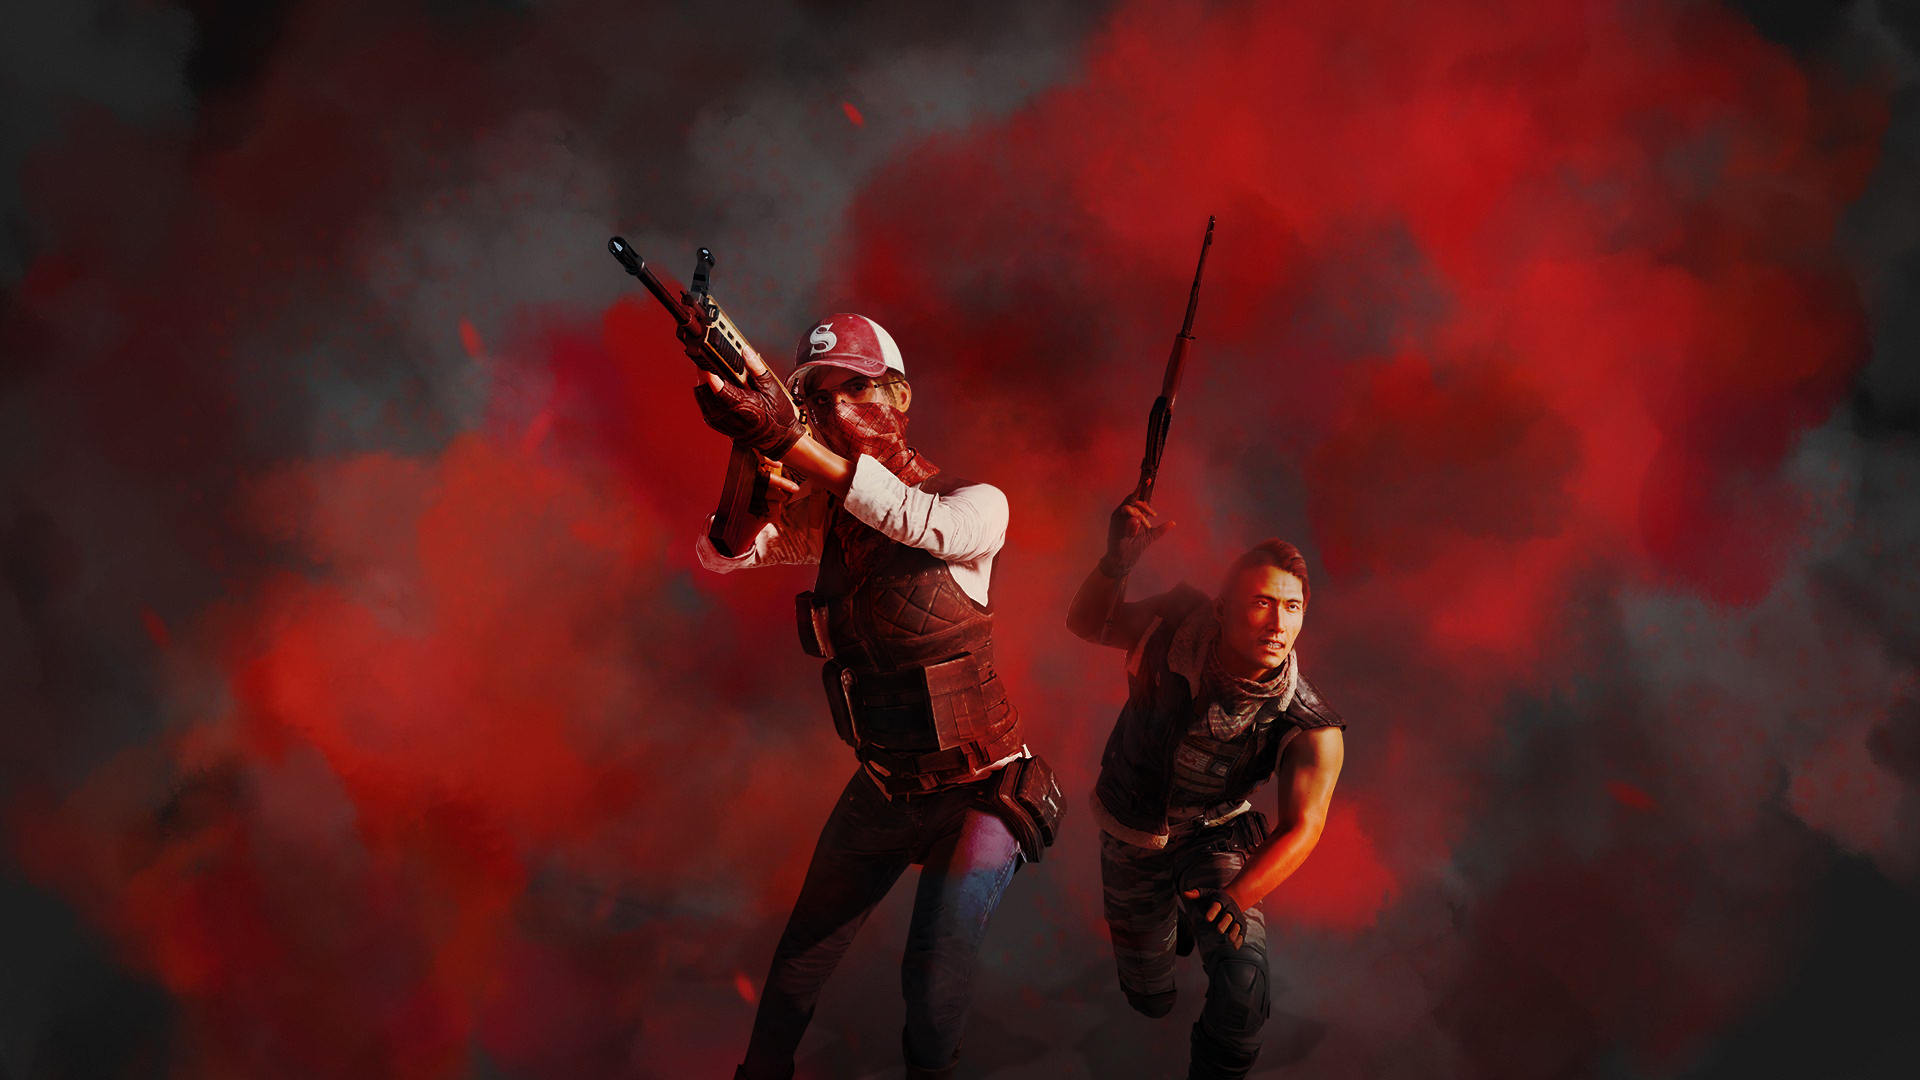 Pubg Wallpaper Themes: PlayerUnknown's Battlegrounds Wallpapers, Pictures, Images